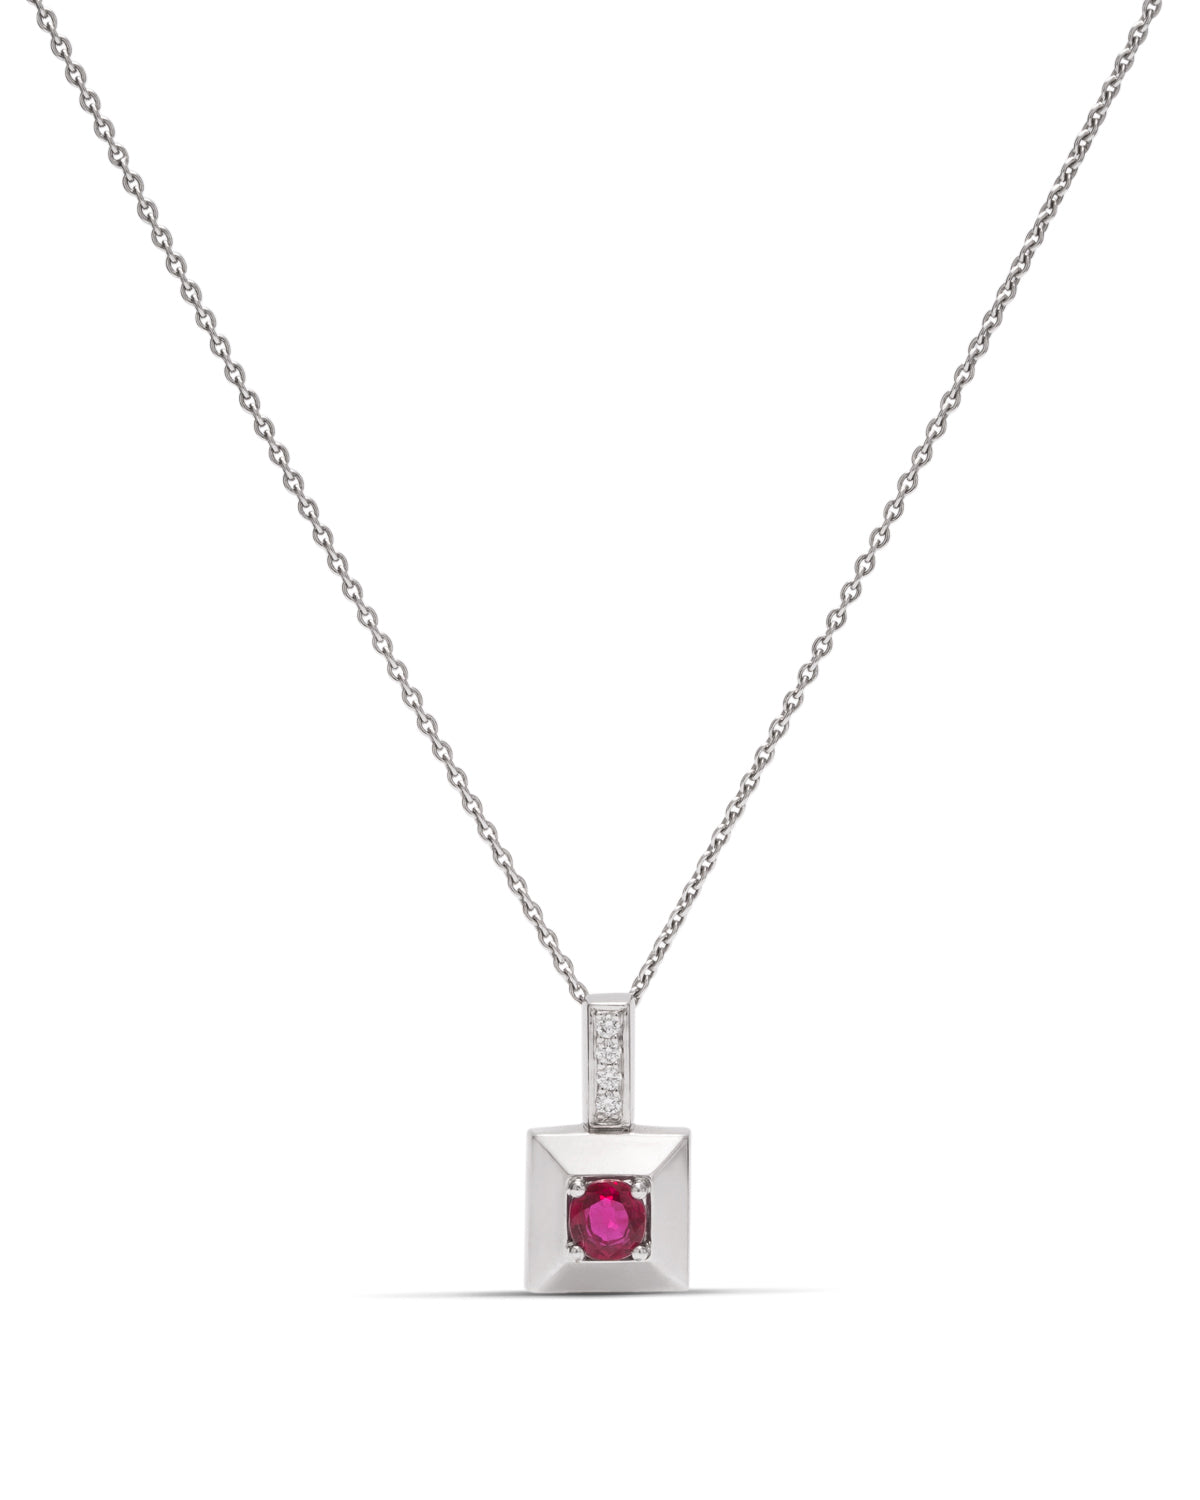 Ruby & Diamonds 18k White Gold Square Pendant - Charles Koll Jewellers